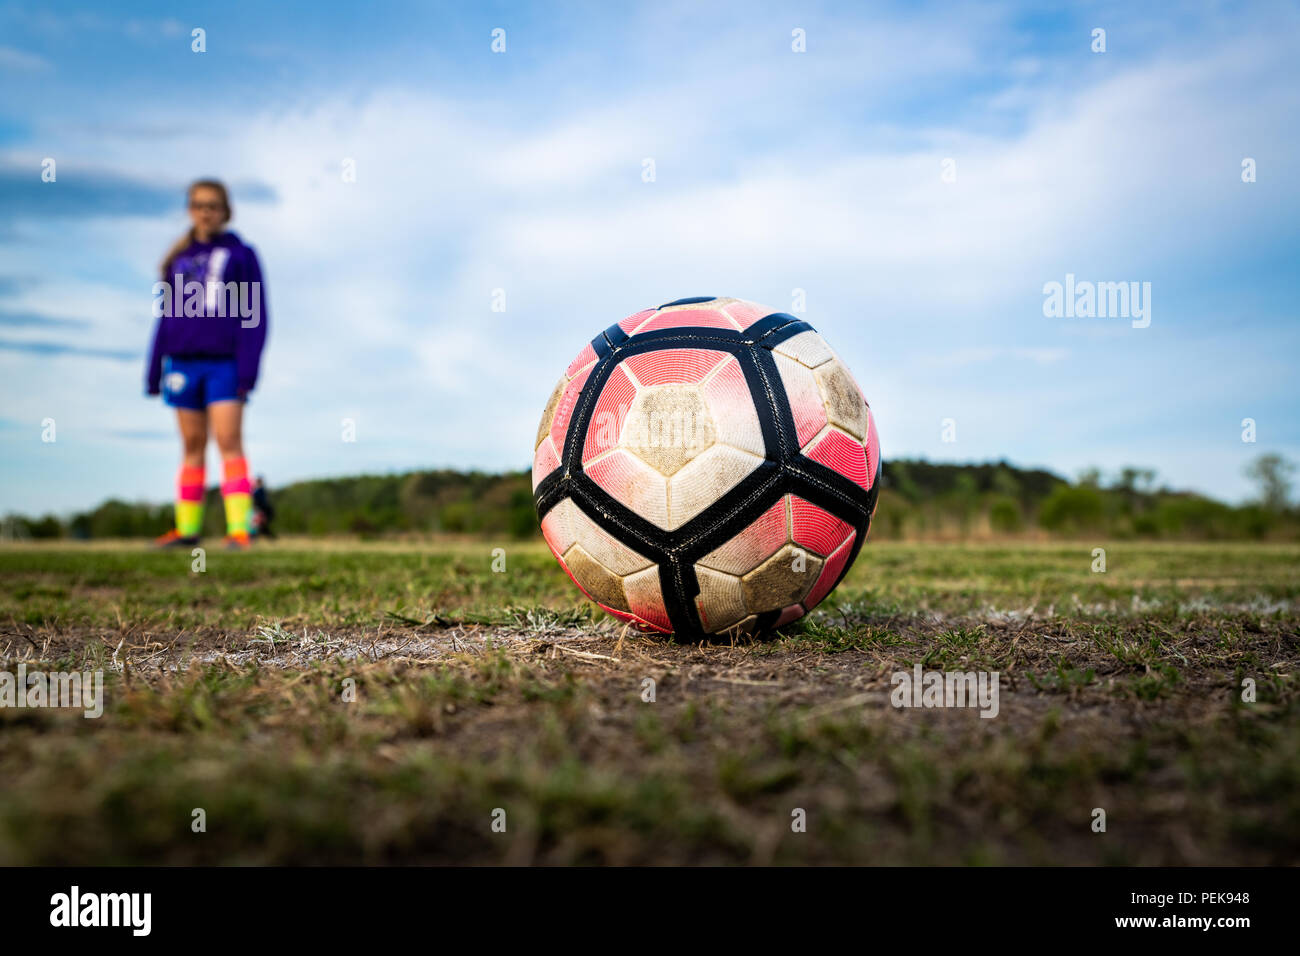 A young girl stands behind a soccer ball, preparing to kick it.  Concepts: youth sports, athlete, focus, preparation, practice, intensity, aspiration, - Stock Image